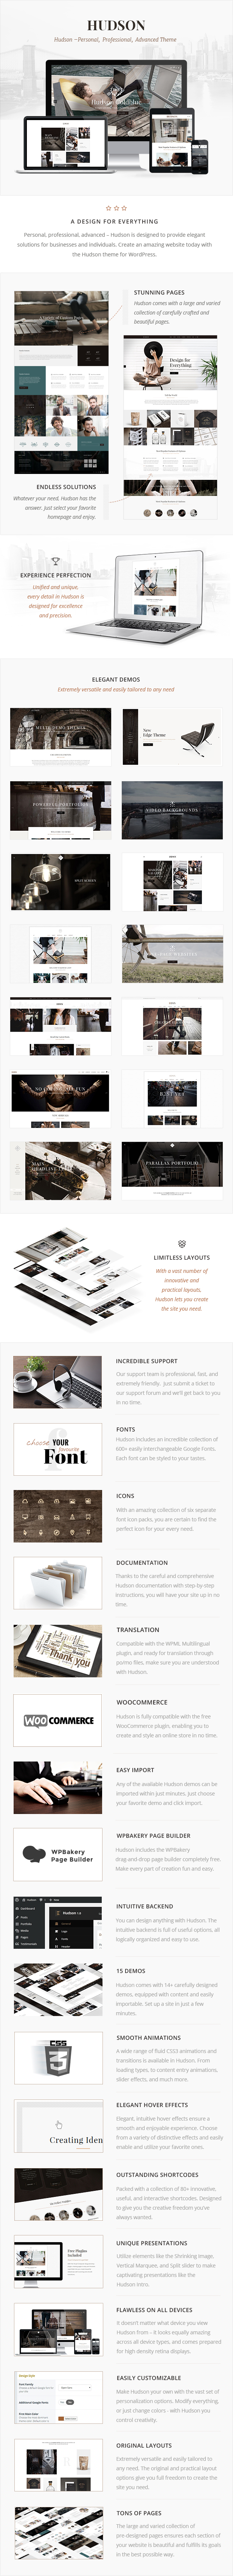 Hudson - Stylish Business Theme - 1